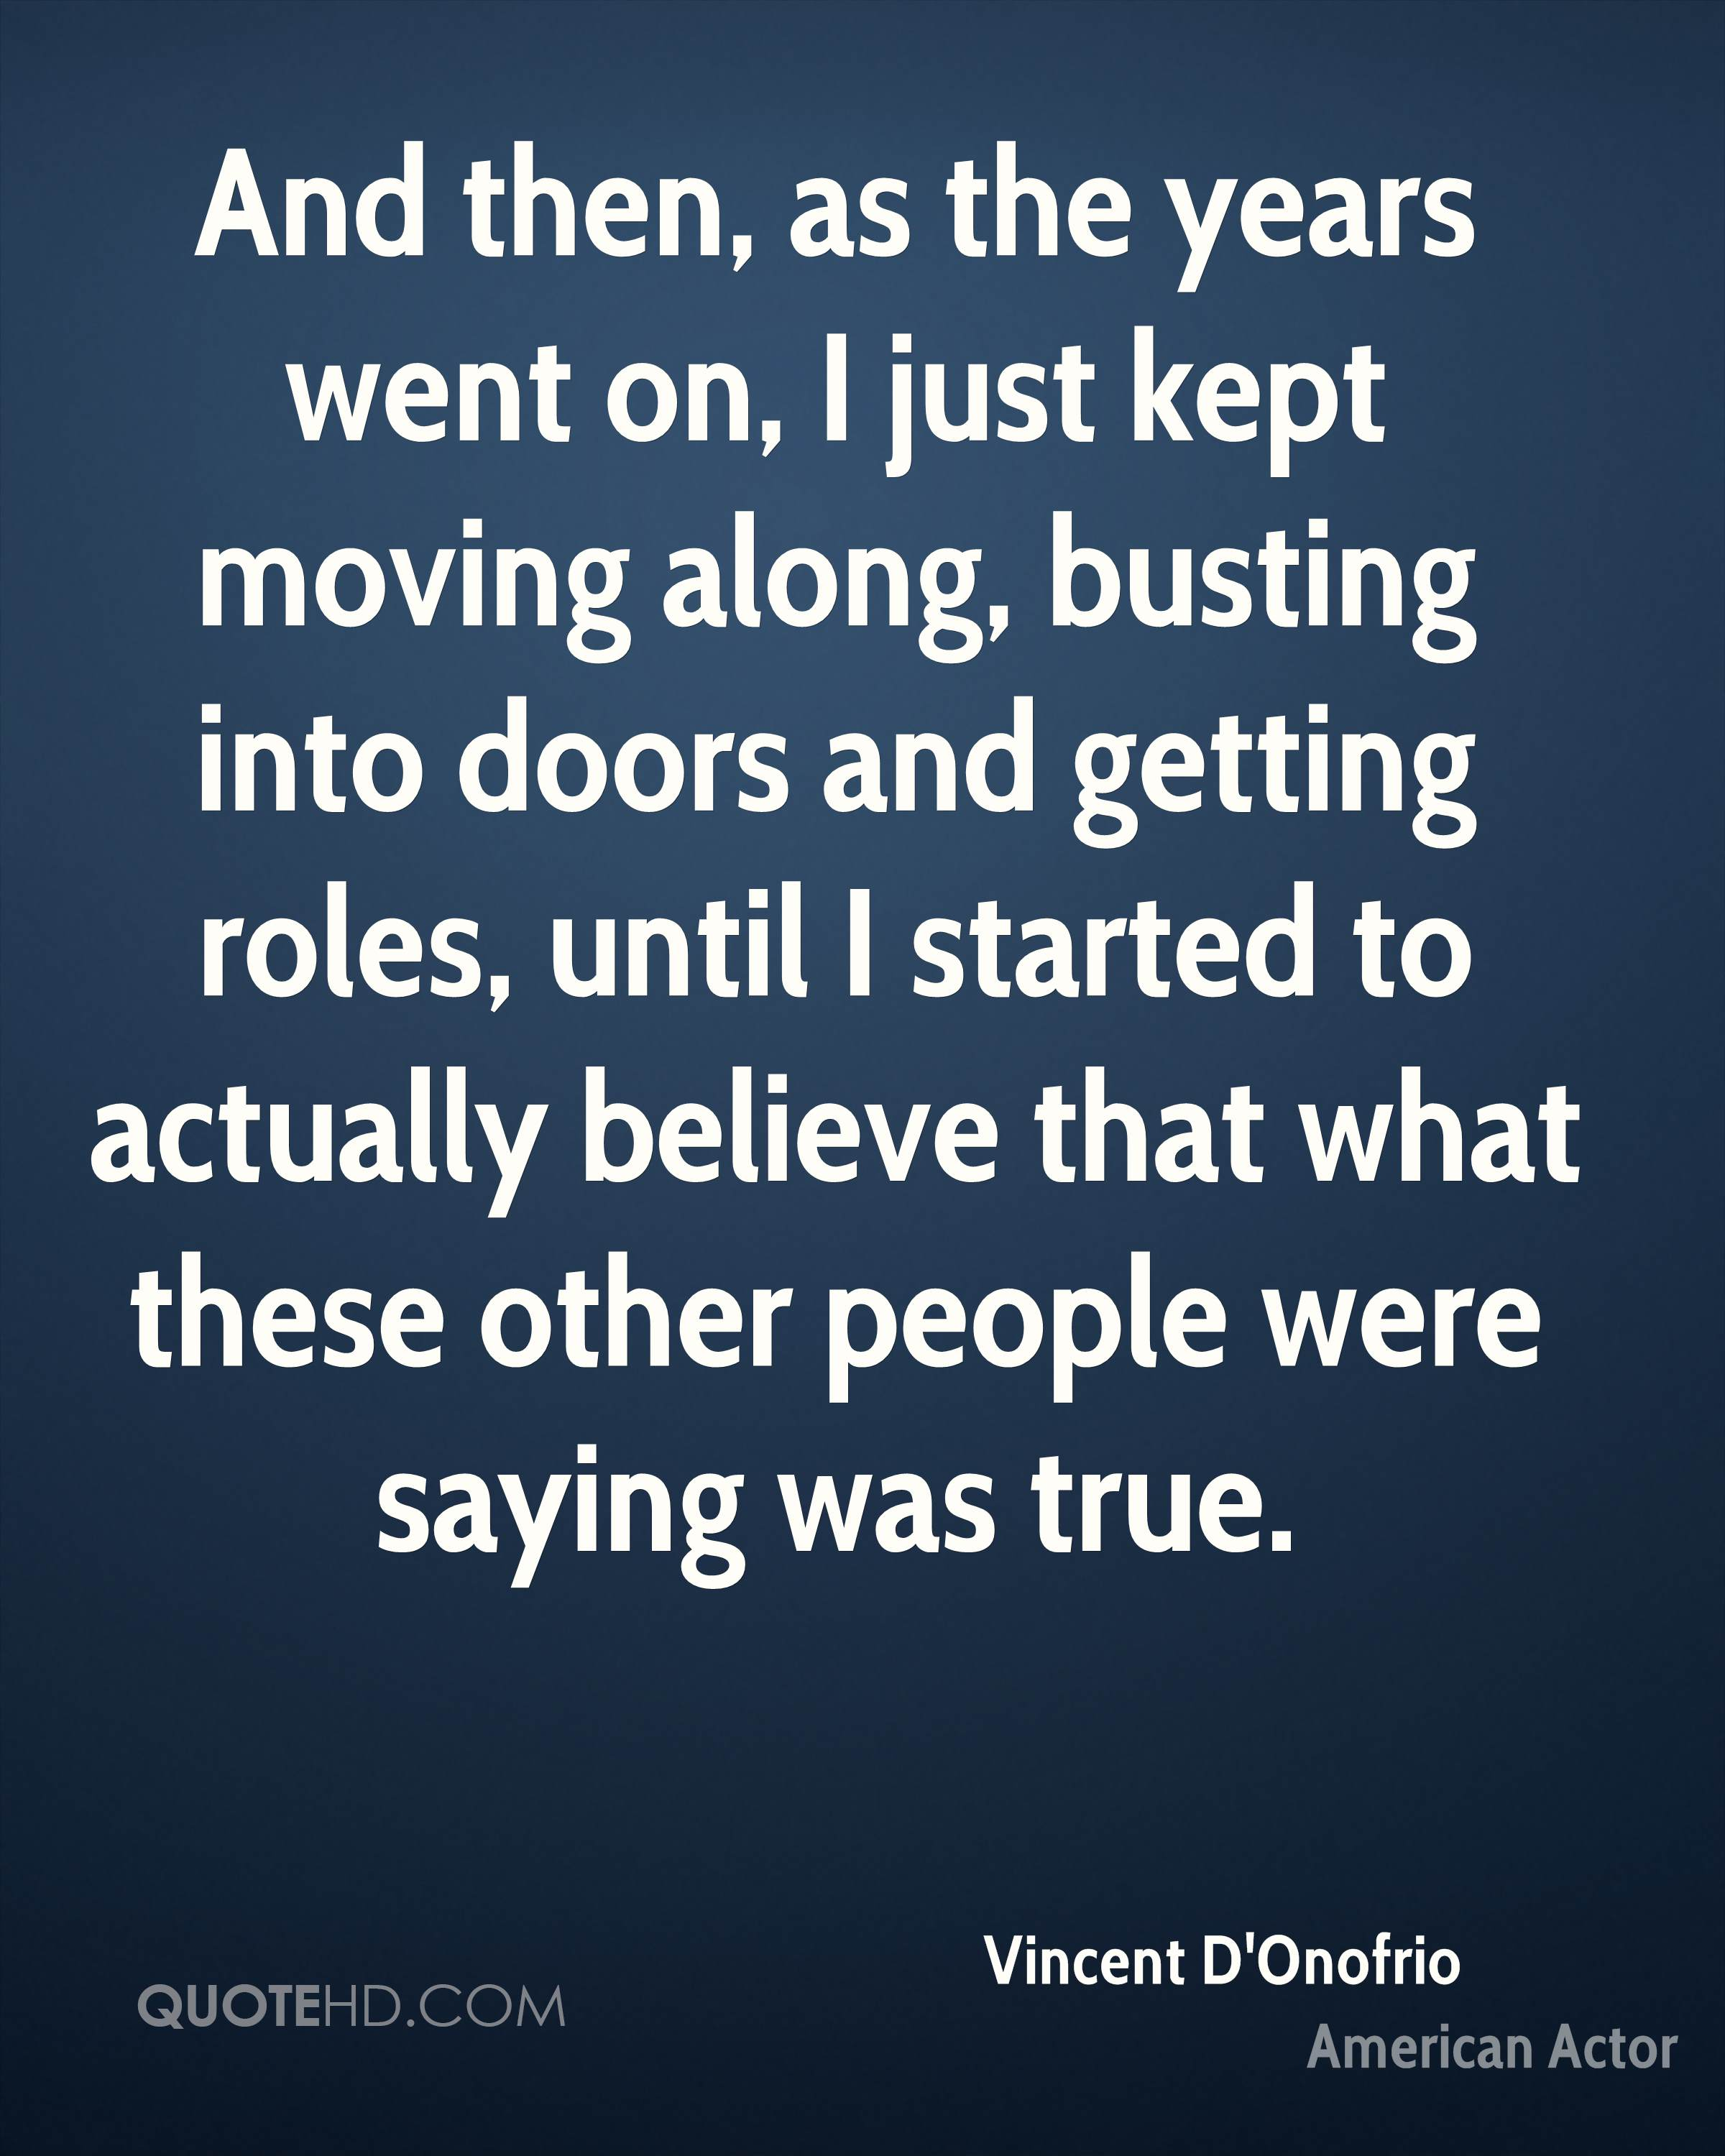 And then, as the years went on, I just kept moving along, busting into doors and getting roles, until I started to actually believe that what these other people were saying was true.